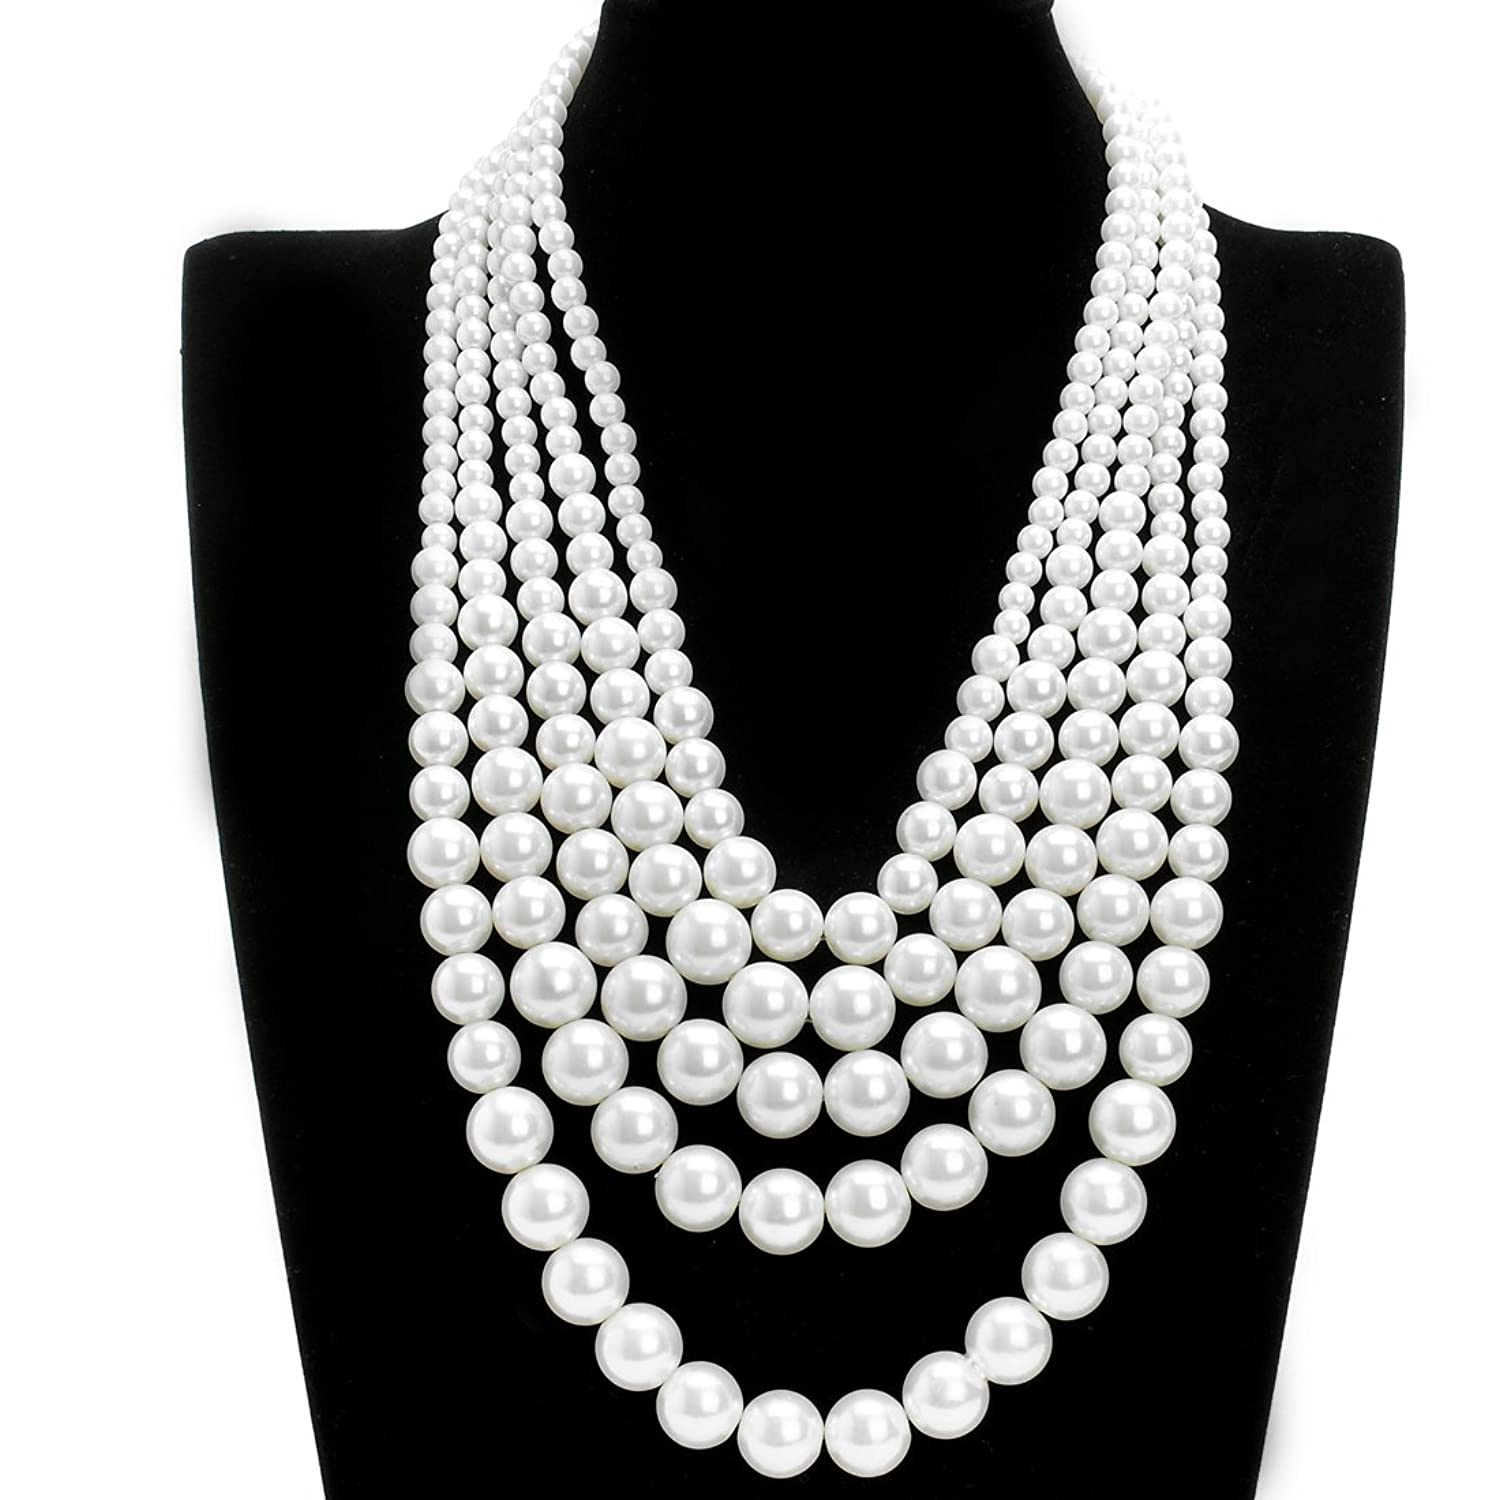 Jerollin Fashion Resin White Faux Pearl Multi Strand 5 Layers Chunky Dressy Bib Necklace Pearl Chain for Christmas Gift WEHsgB